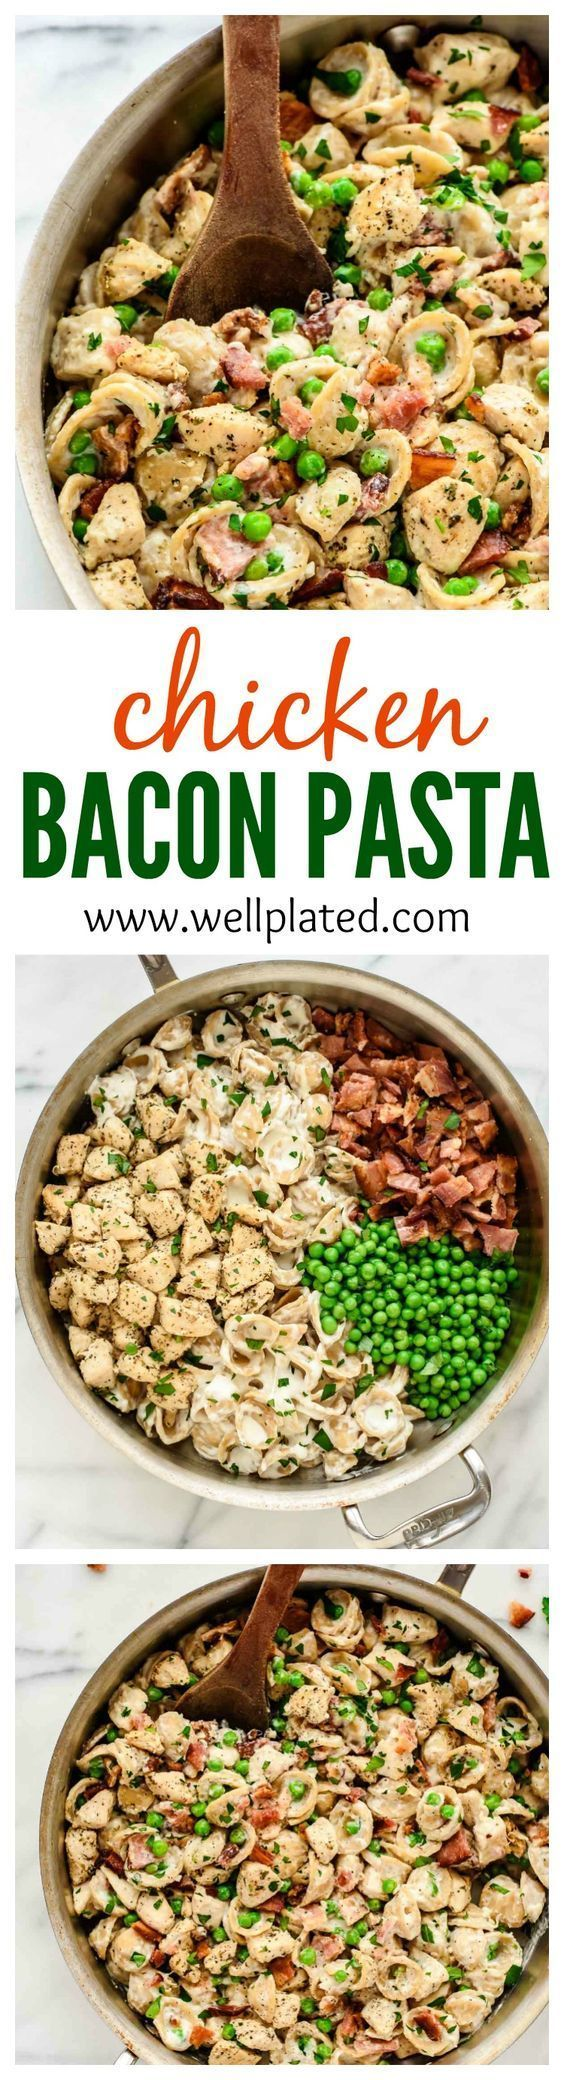 Chicken Bacon Pasta with Peas. Creamy, cheesy, and comforting! Loaded with Italian chicken, bacon, and homemade alfredo sauce. Ready in only 30 minutes and totally irresistible! | http://www.wellplated.com @wellplated